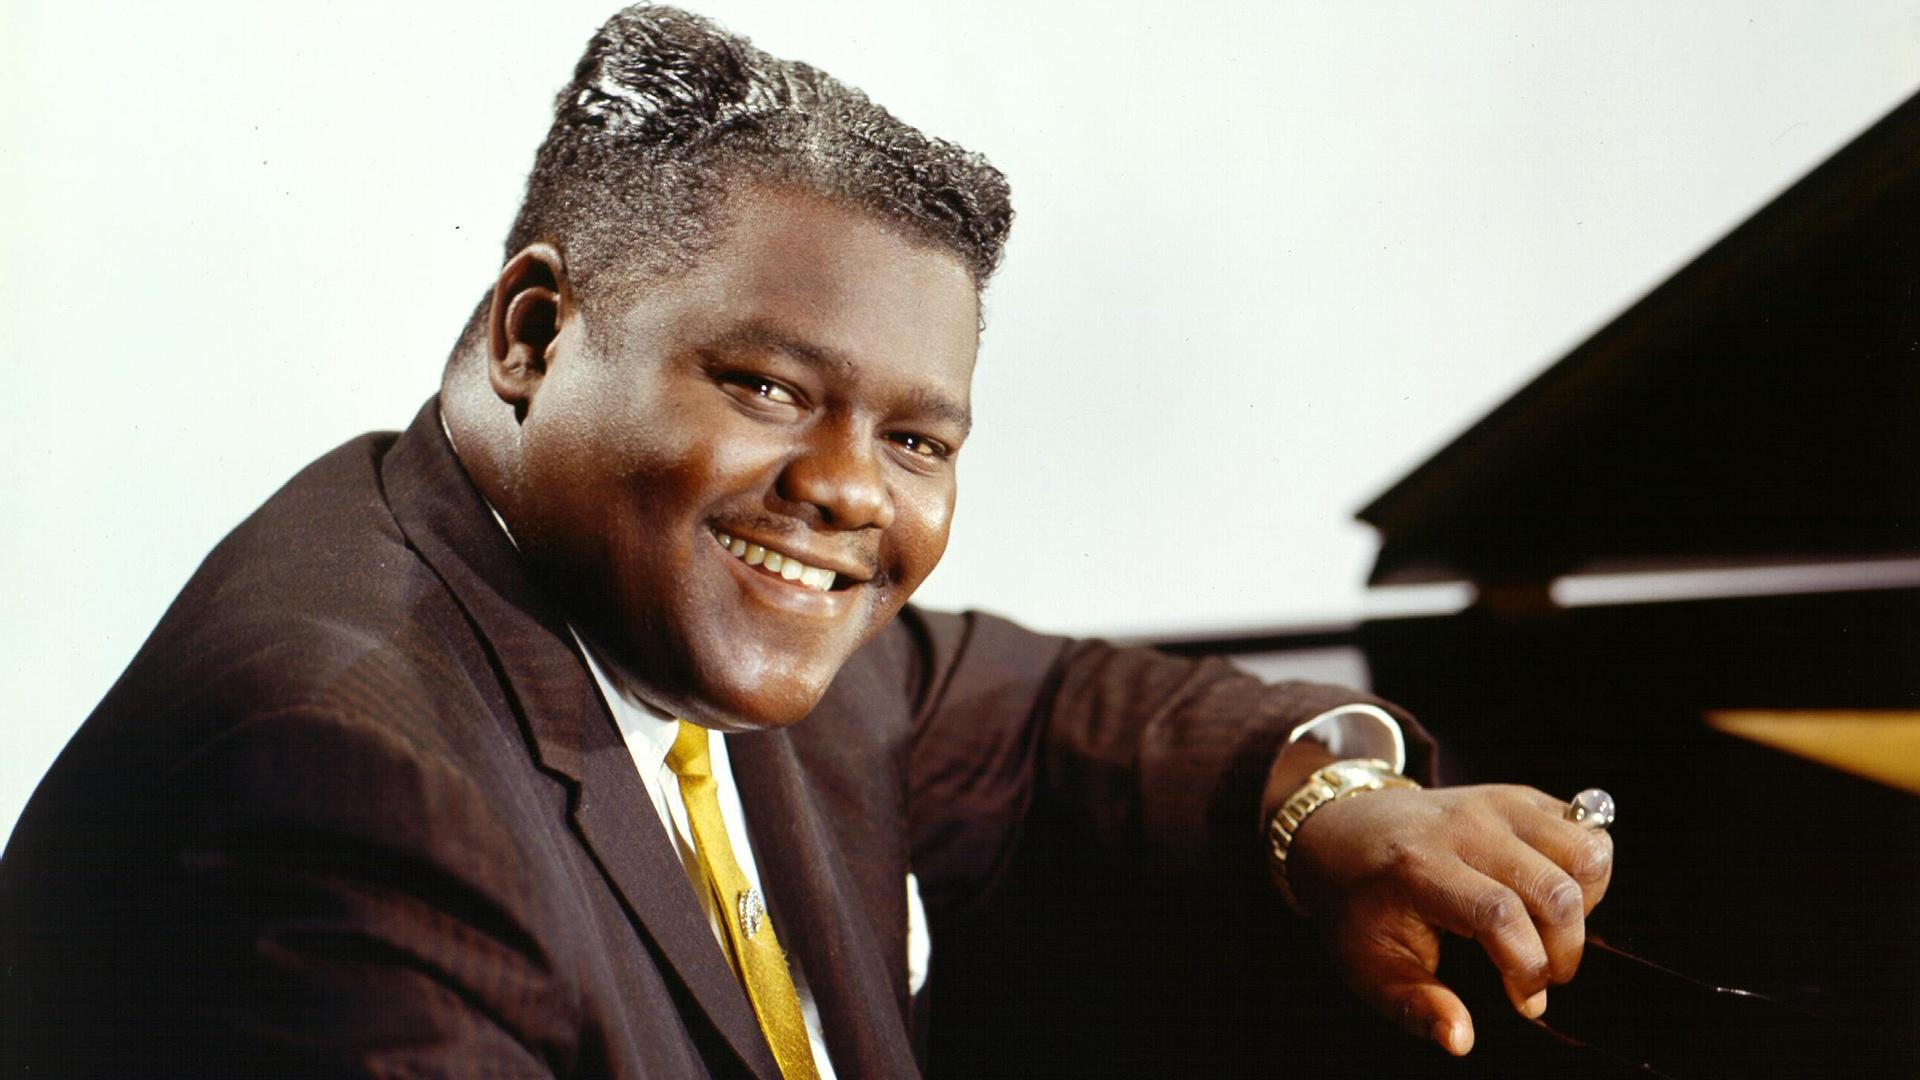 Fats Domino and The Birth of Rock 'n' Roll